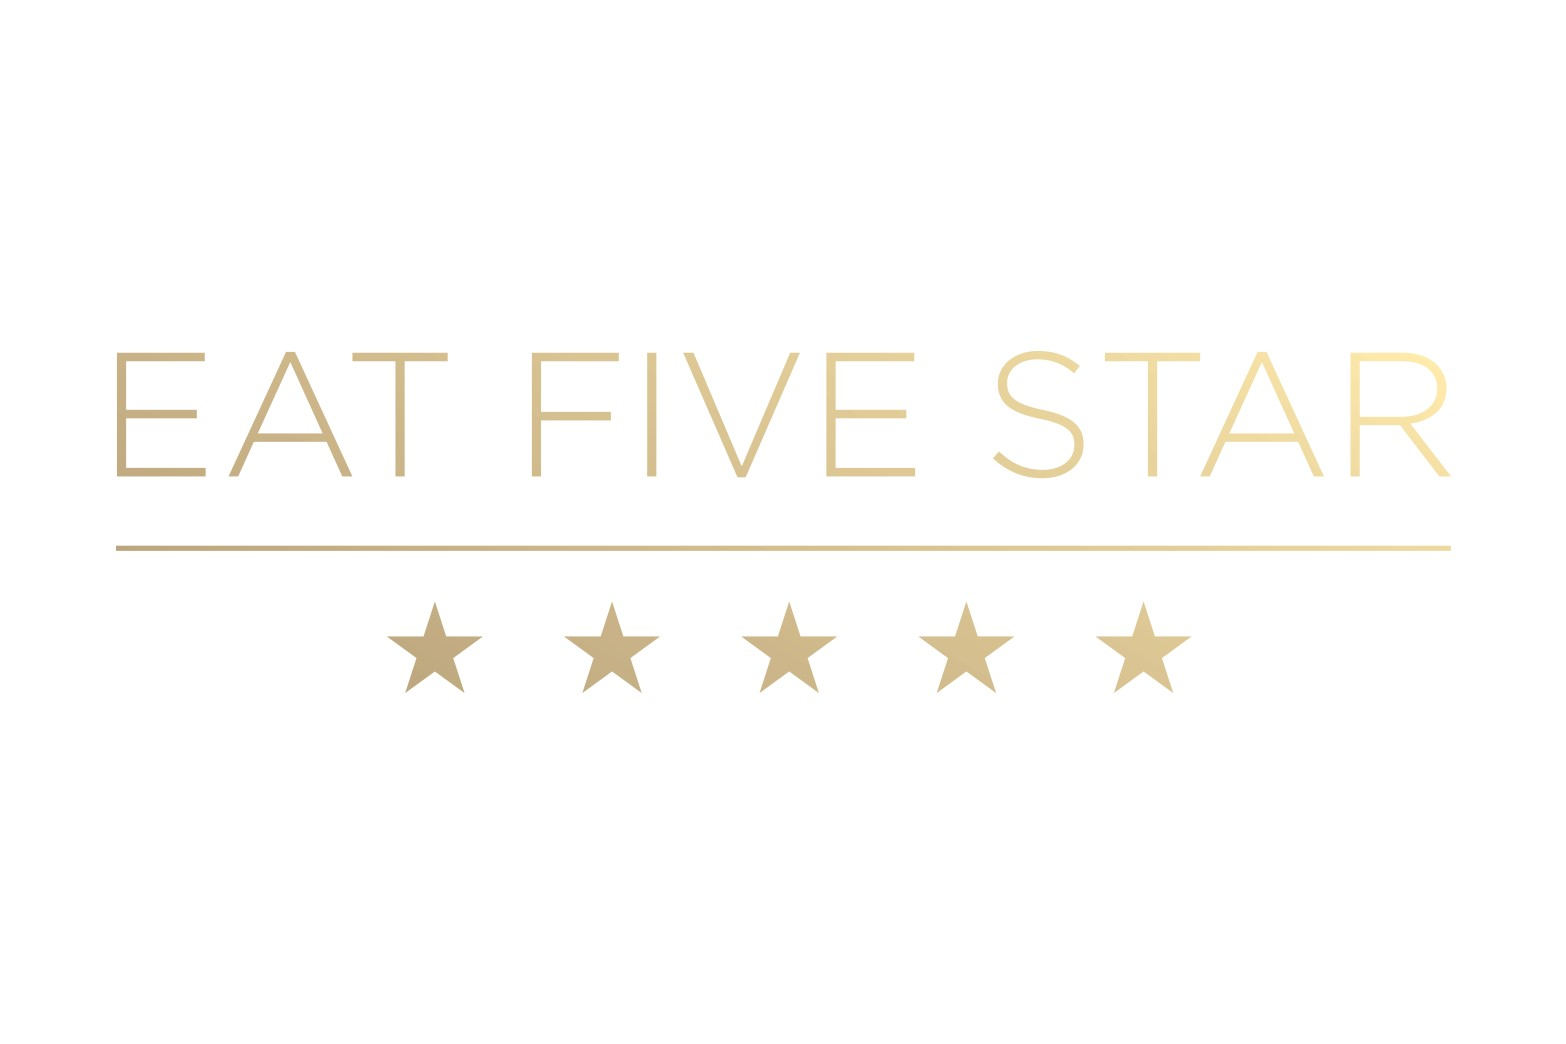 eat-five-star-logo on white.jpg